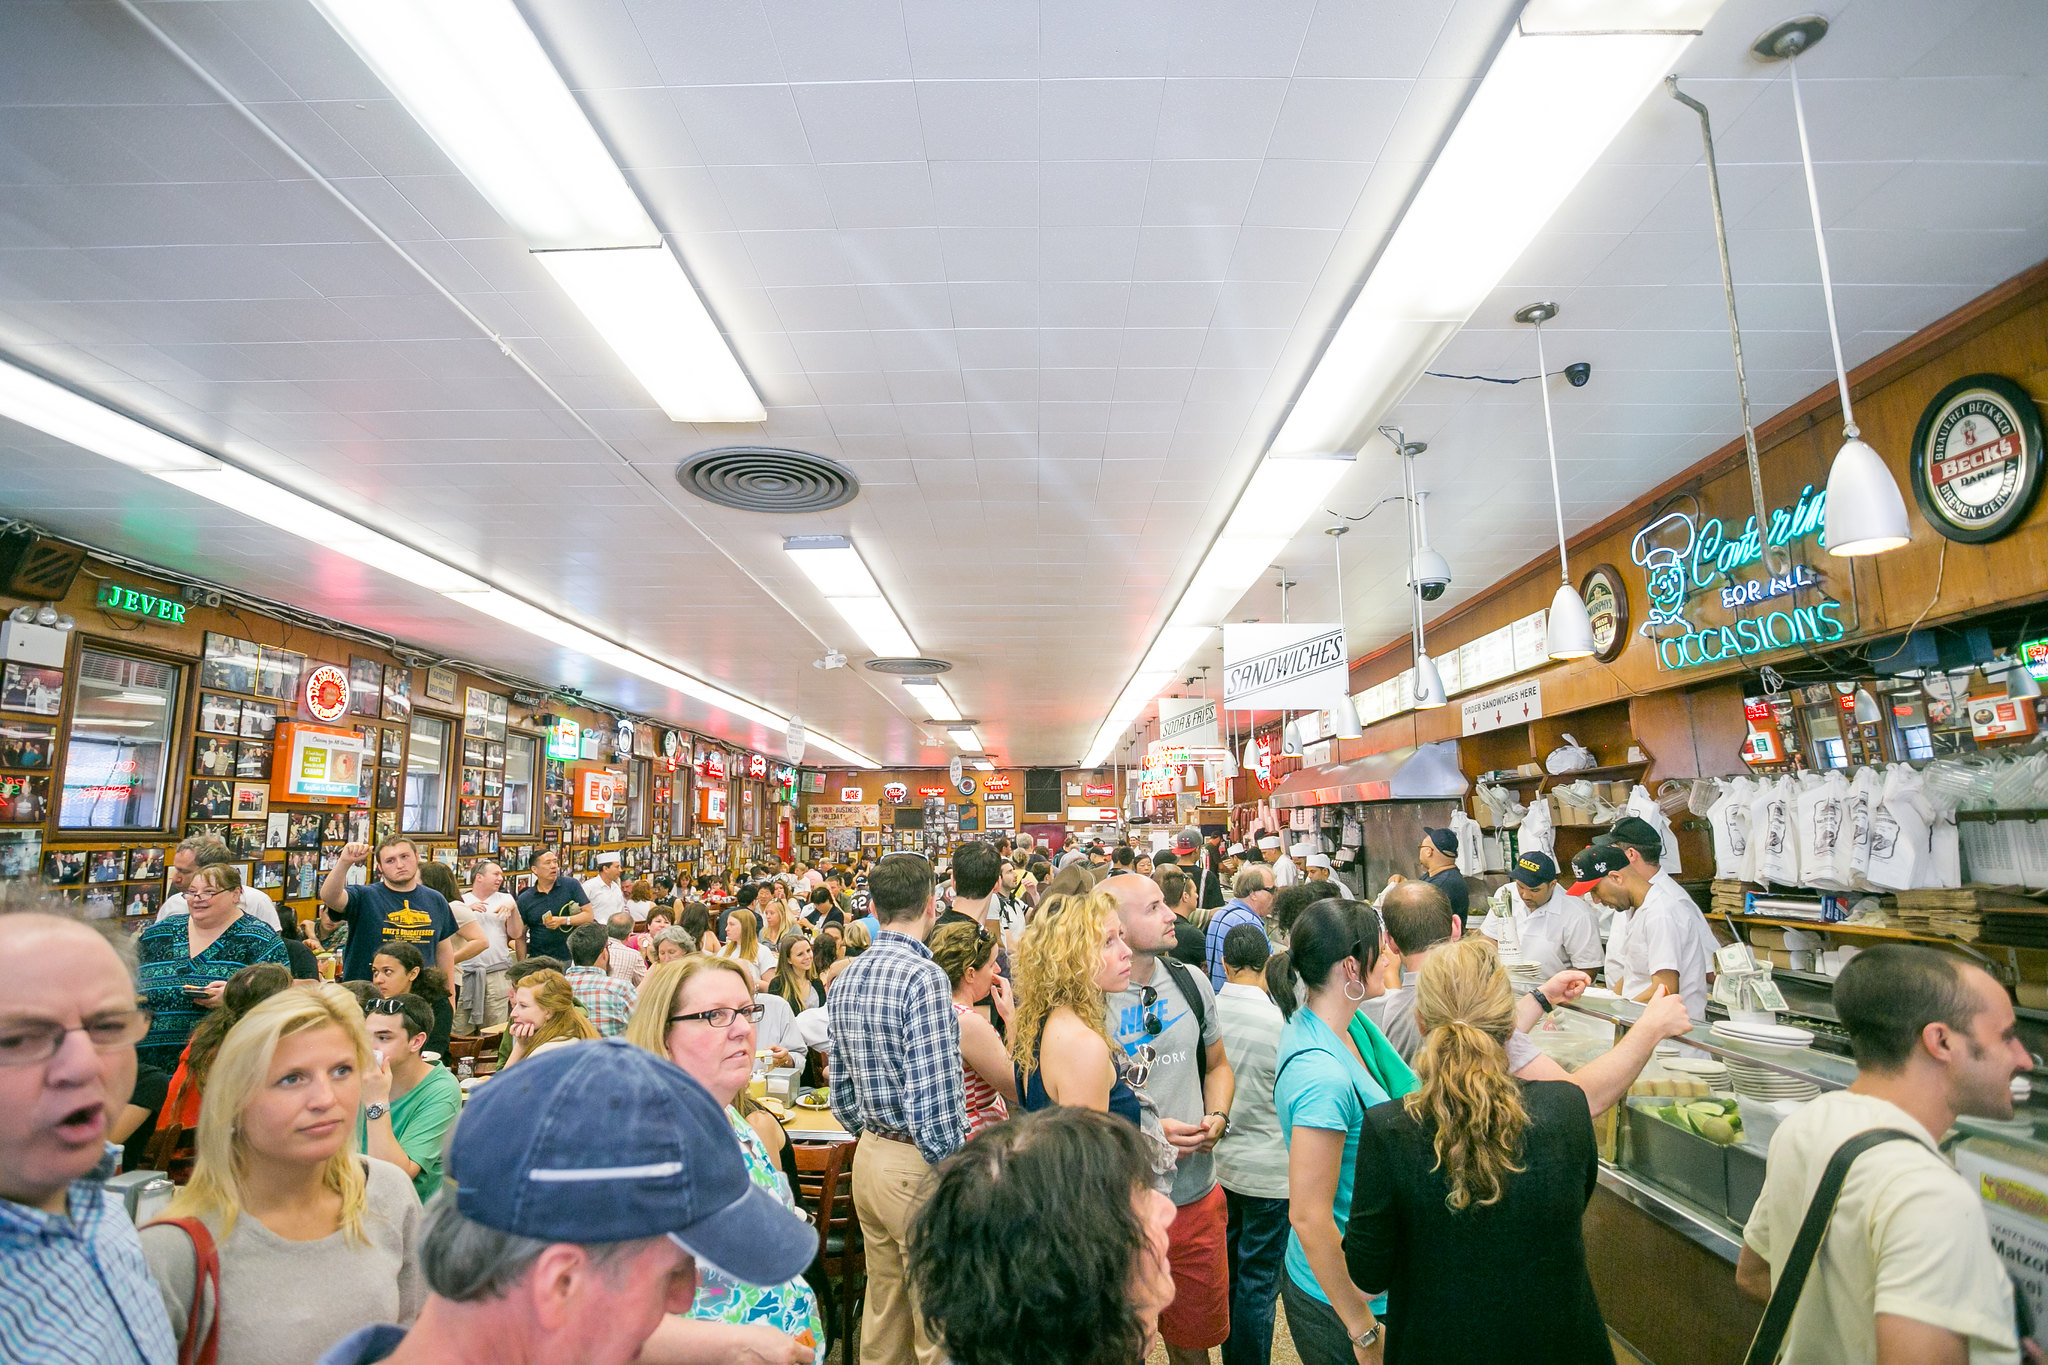 A large crowd gathers inside the bright Katz's Deli in New York City.